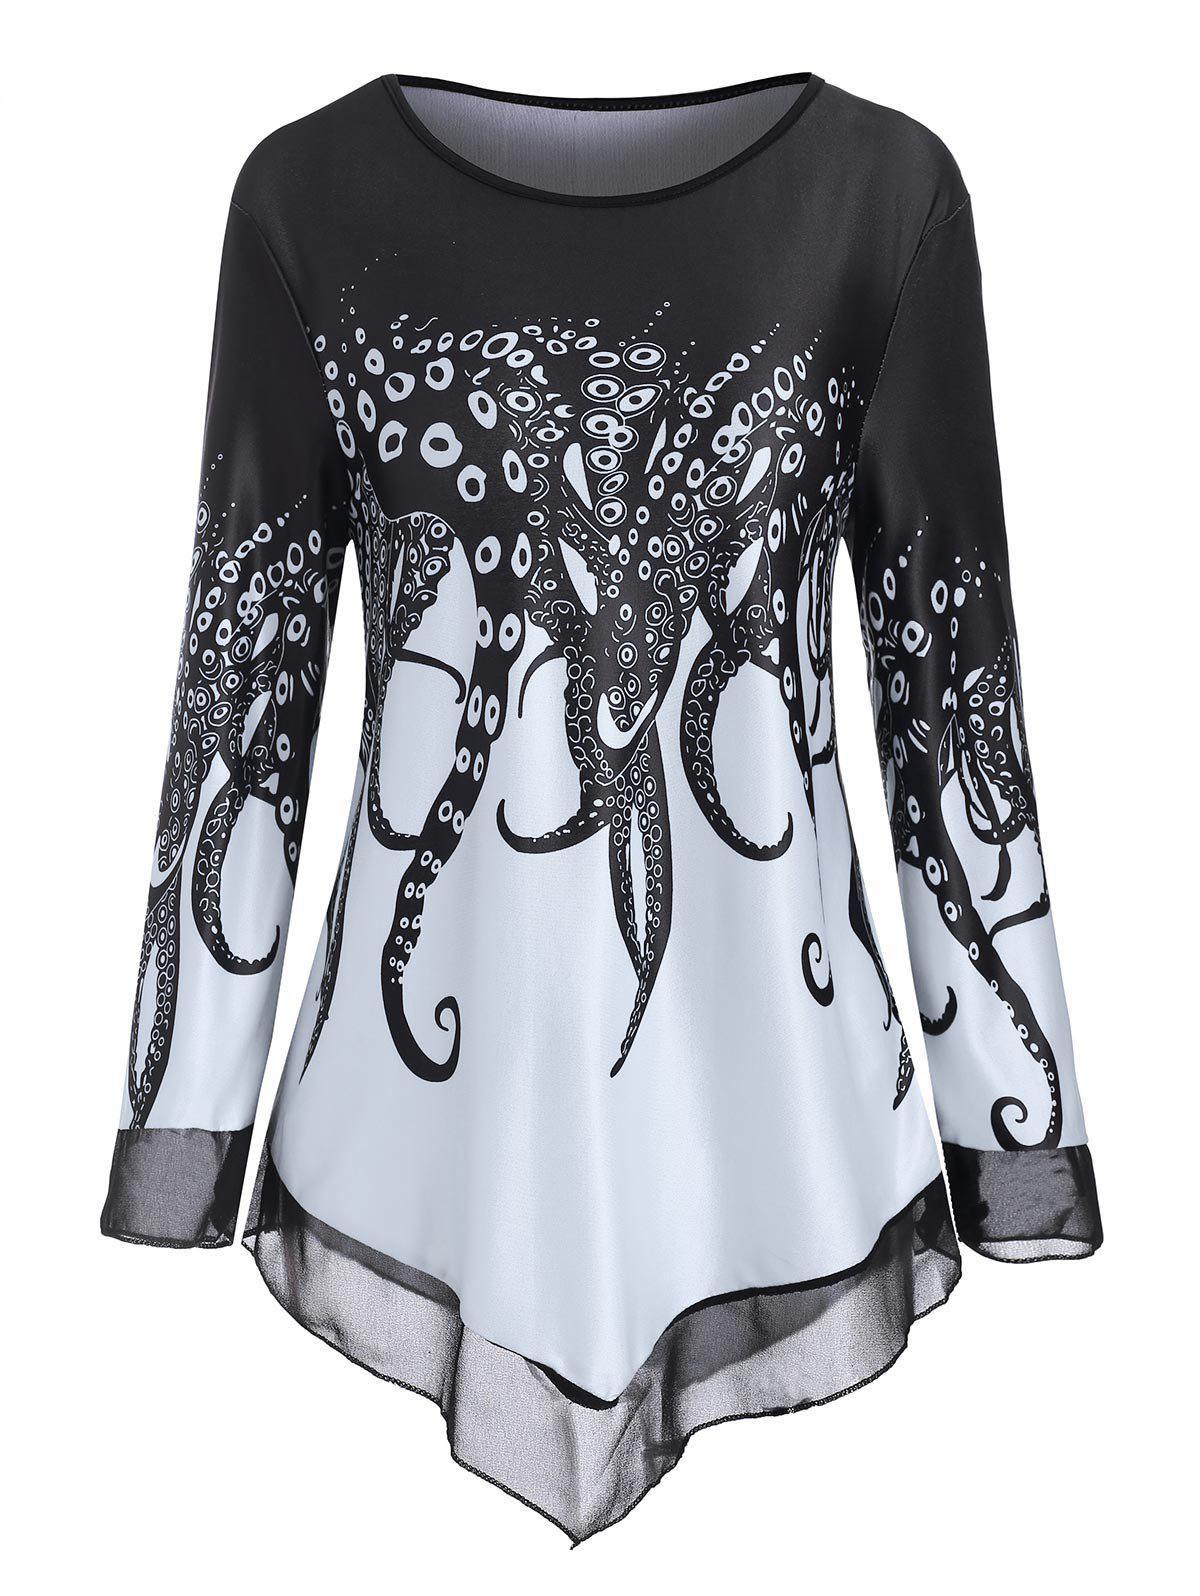 Discount Octopus Tentacles Chiffon Panel Round Neck Tee